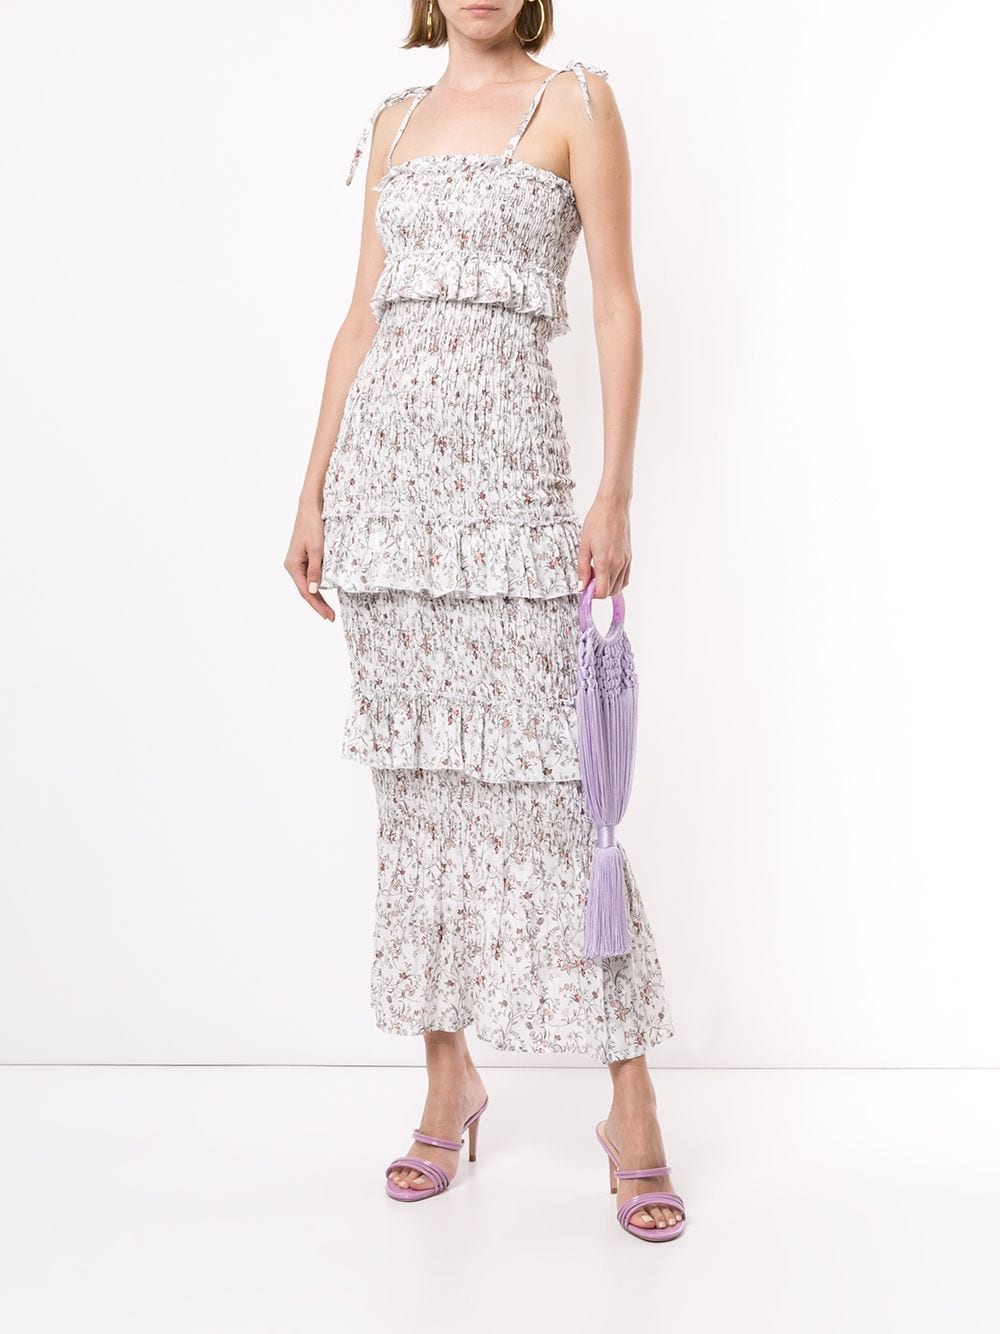 SIR. Haisley Floral Ruched Midi Dress